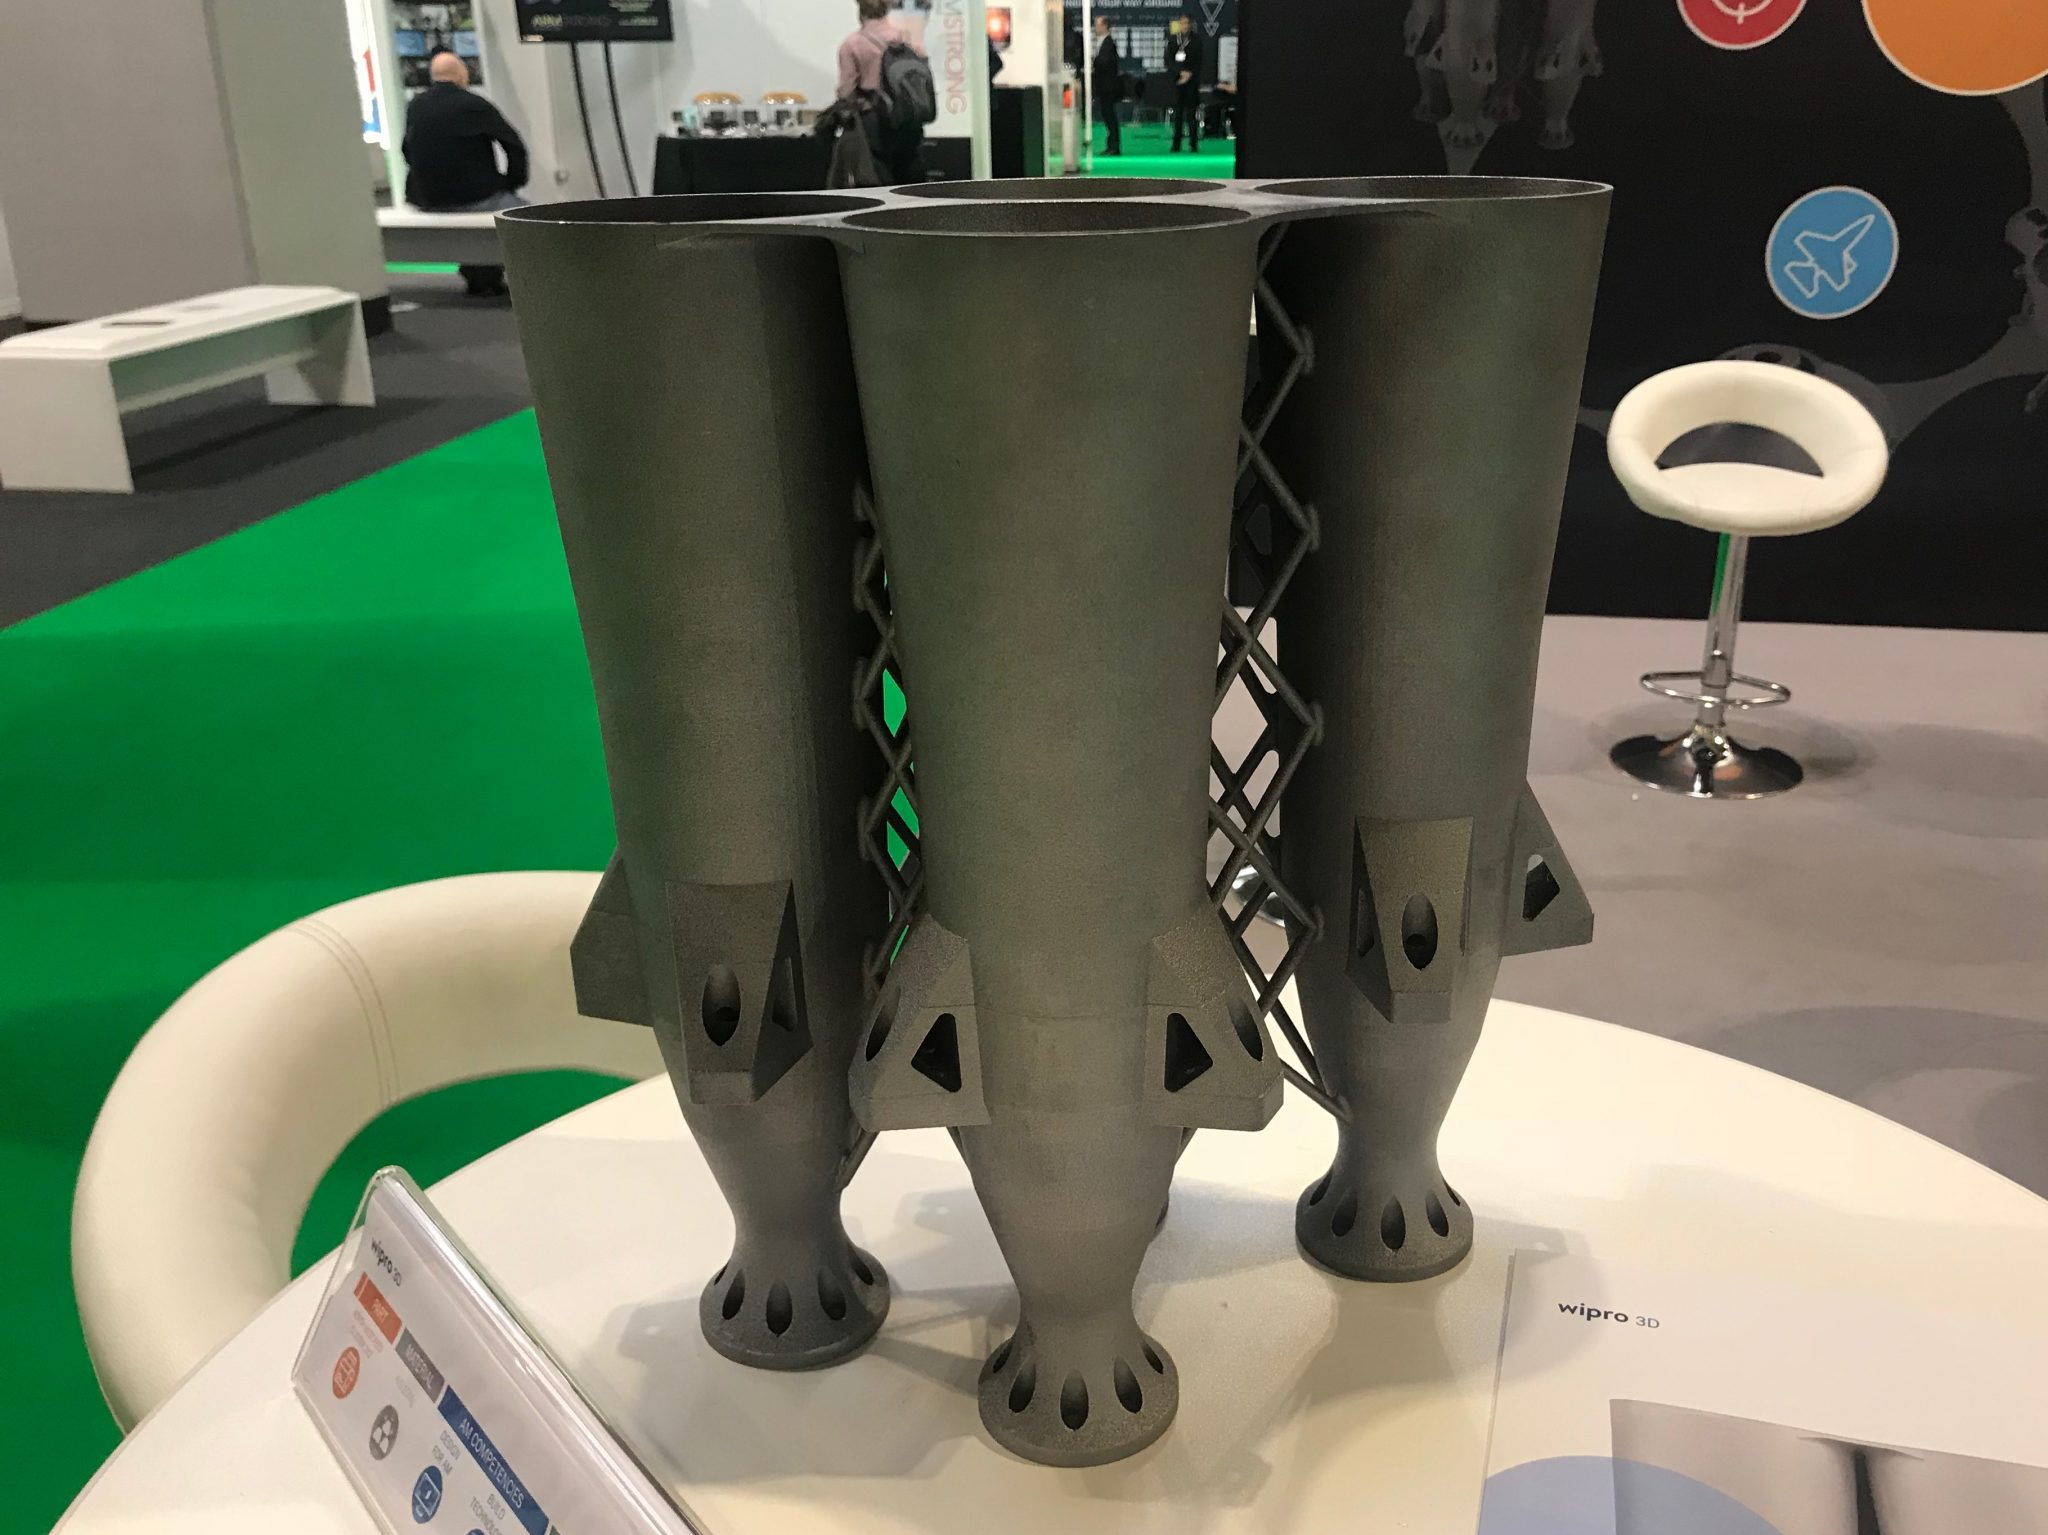 Wipro3D's metal 3D printed feed cluster at TCT 2018 in the UK. Photo by Swamini Khanvilkar